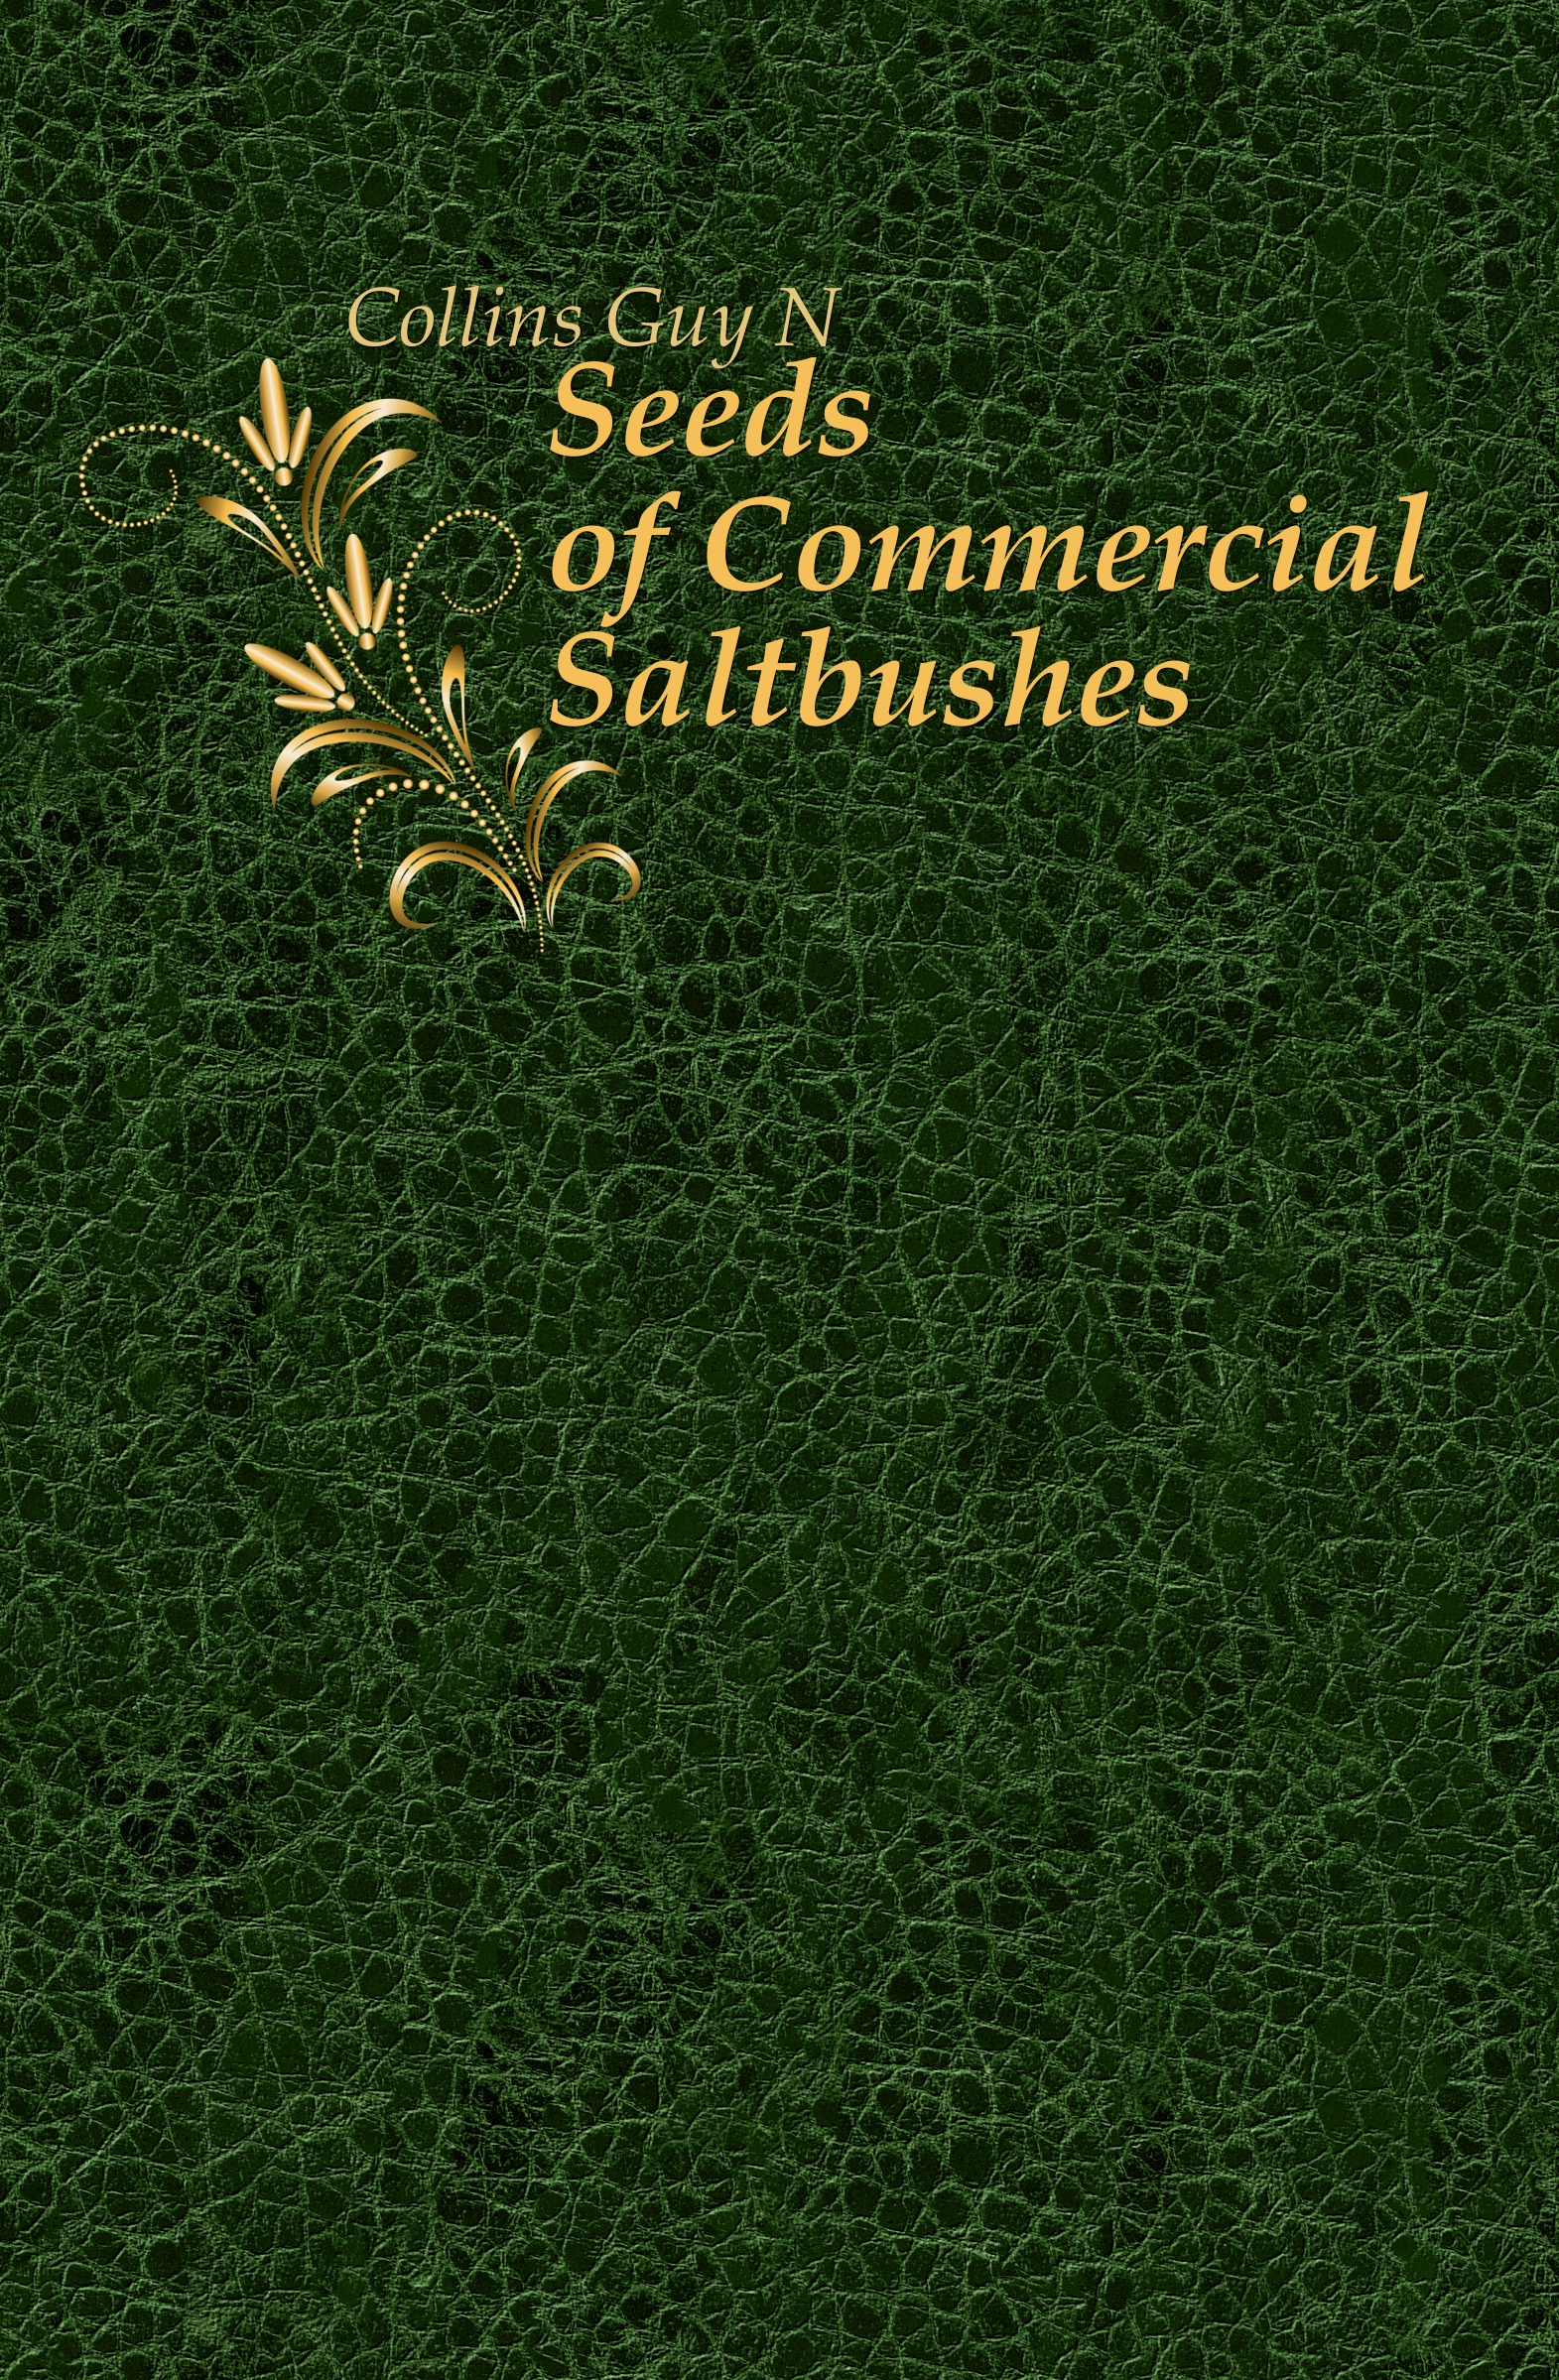 Guy N. Collins Seeds of Commercial Saltbushes